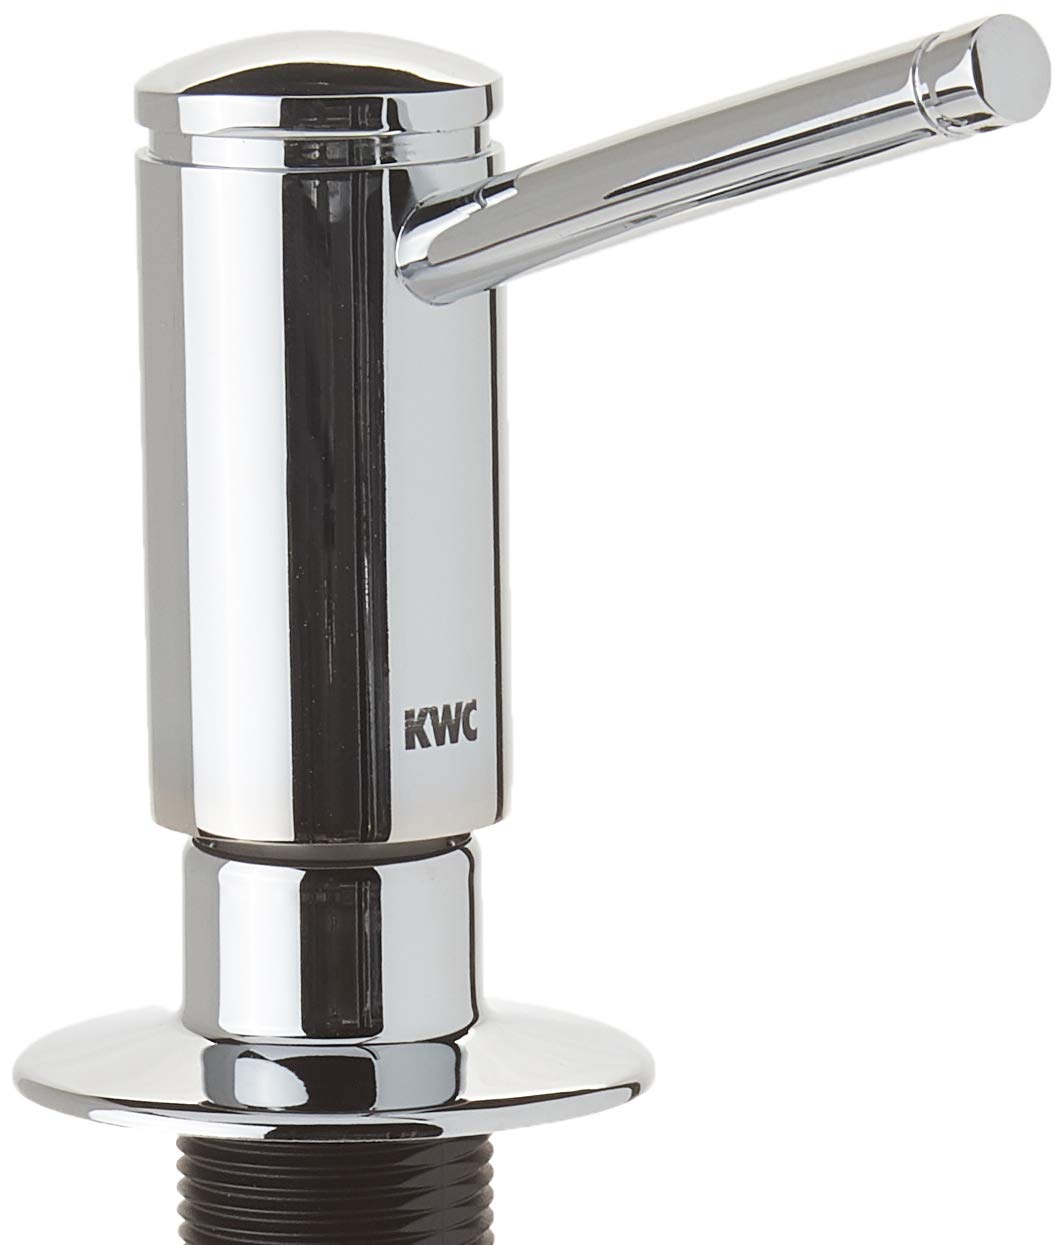 KWC Faucets Z.504.938.000 PRIMO Soap Dispenser, 3-1/4'', Chrome by KWC Faucets (Image #2)